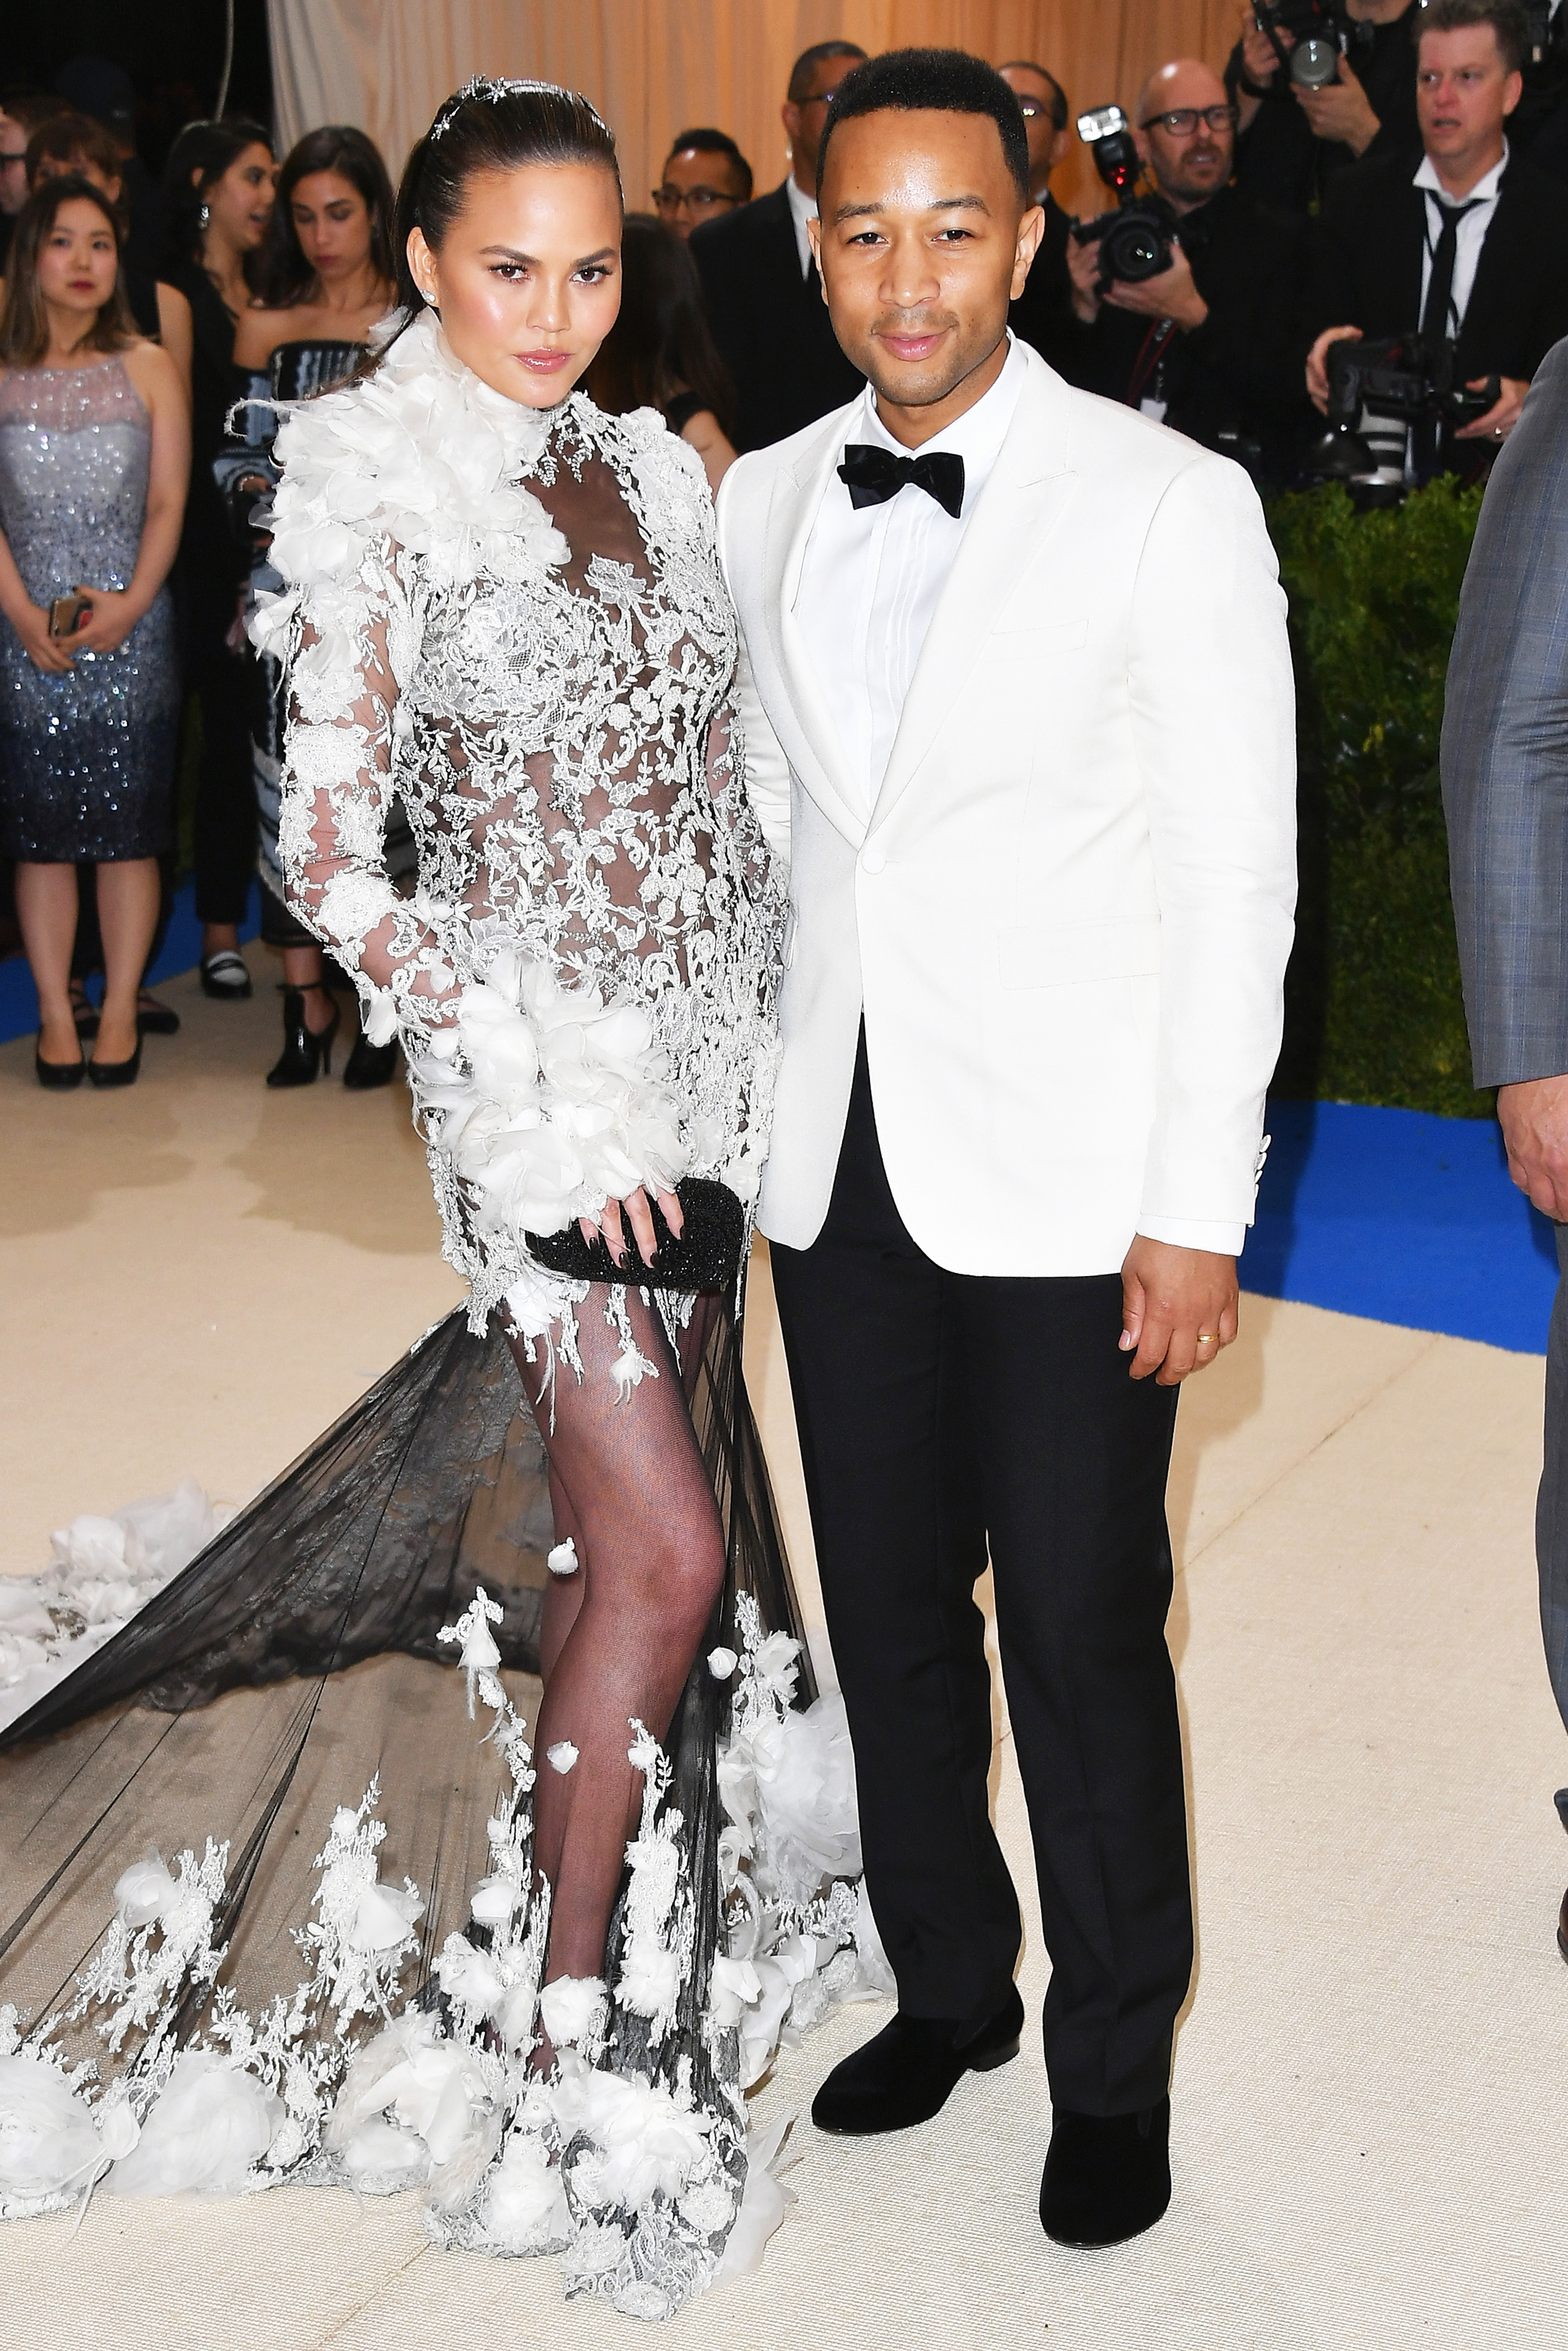 Chrissy Teigen and John Legend attend The Metropolitan Museum of Art's Costume Institute benefit gala celebrating the opening of the Rei Kawakubo/Comme des Garçons: Art of the In-Between exhibition in New York City, on May 1, 2017.